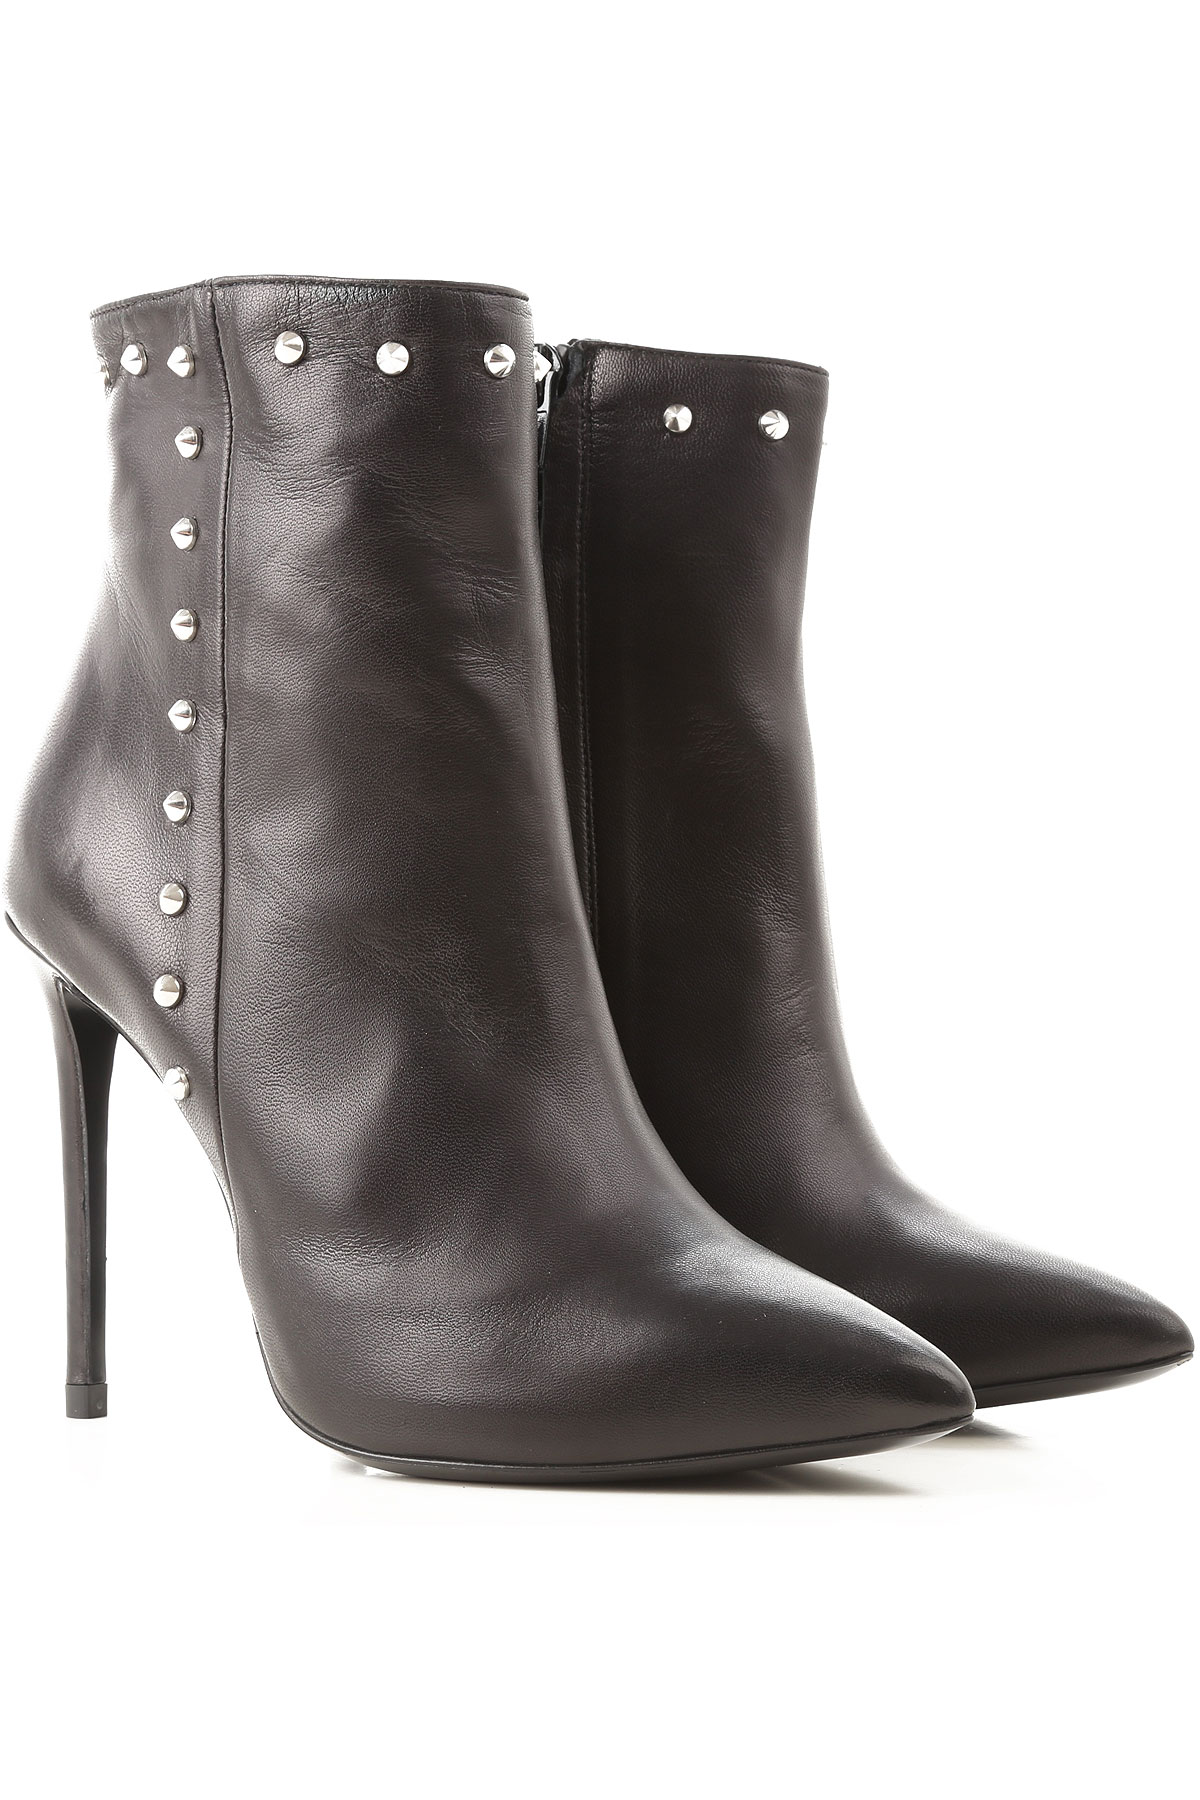 Image of Marc Ellis Boots for Women, Booties, Black, Leather, 2017, 10 6 7 8 9